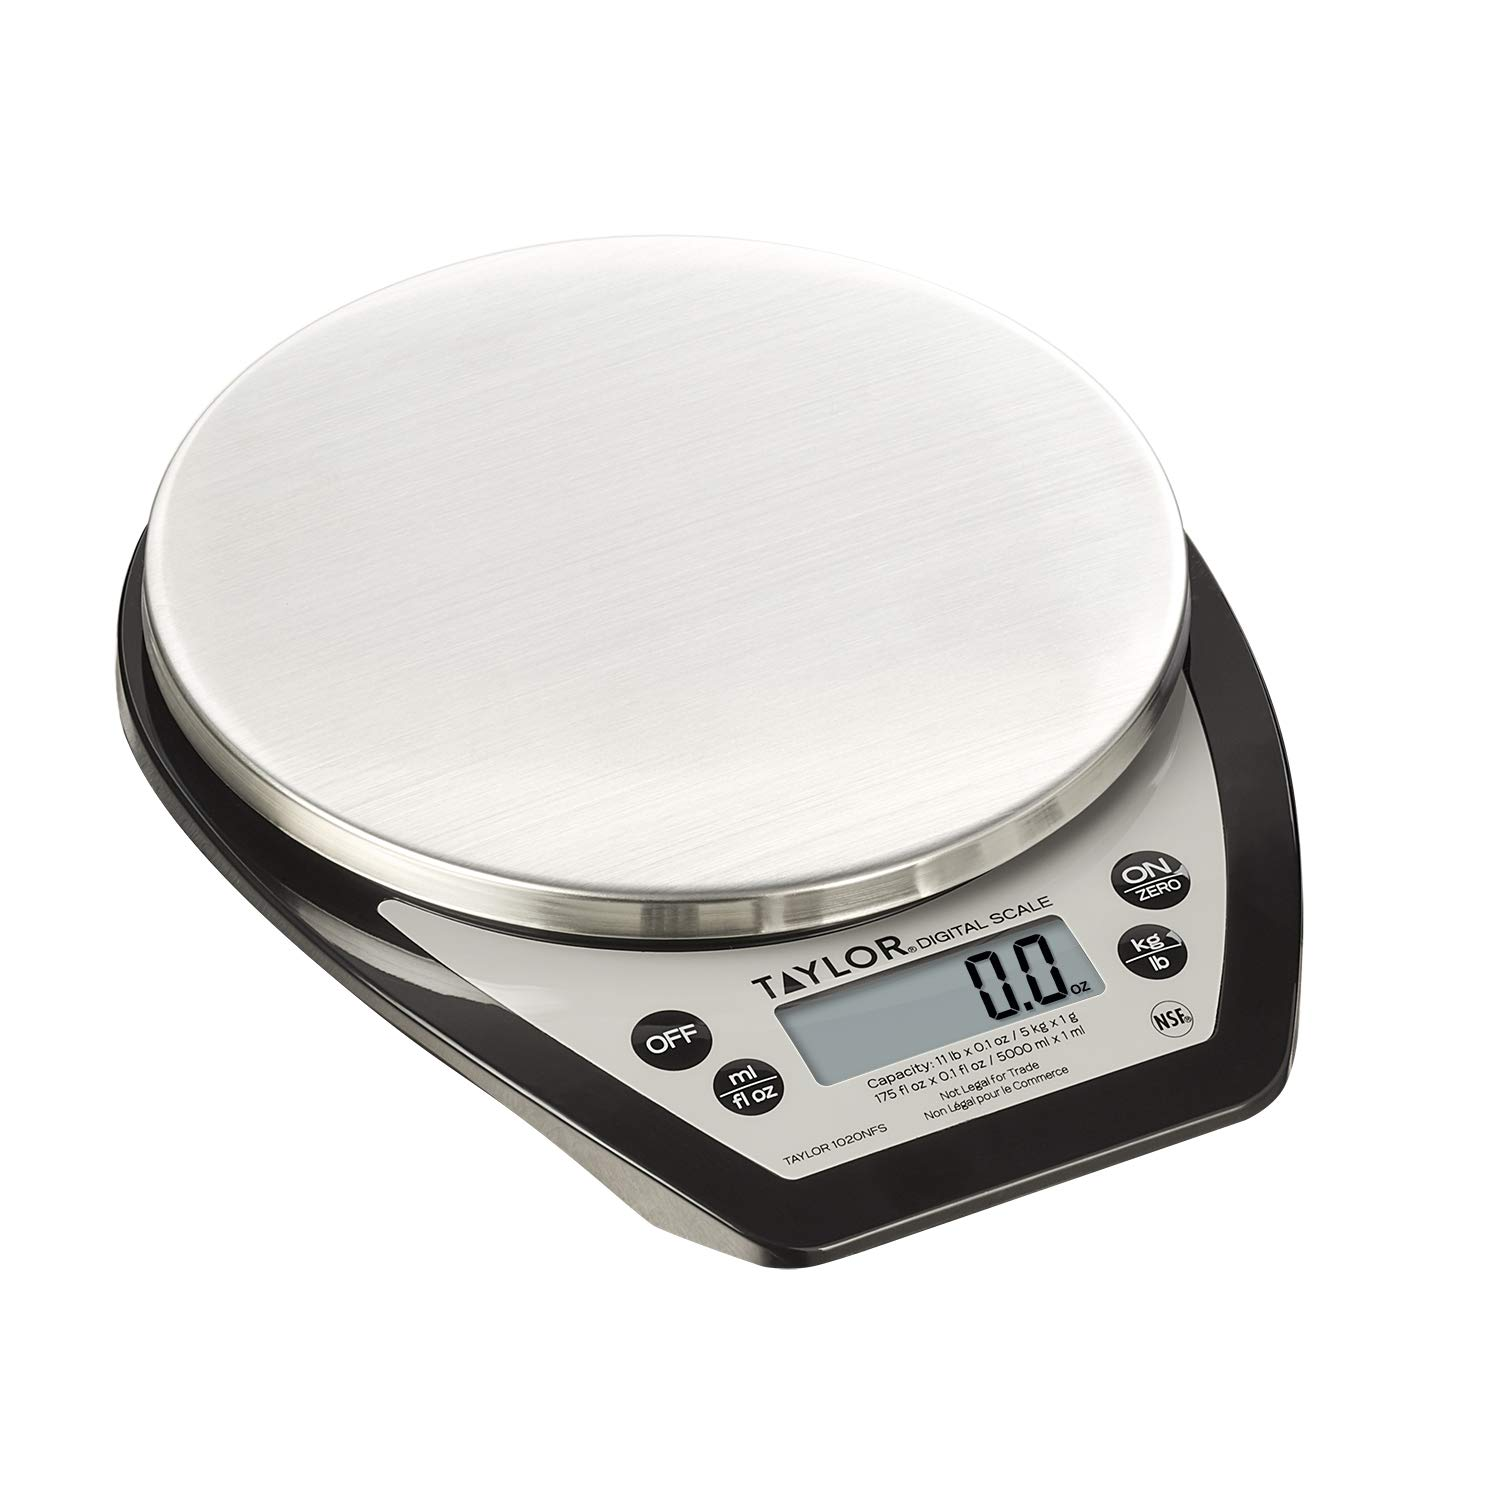 Miami Mall Taylor Seasonal Wrap Introduction Precision Products Compact Scale 1020NFS Digital